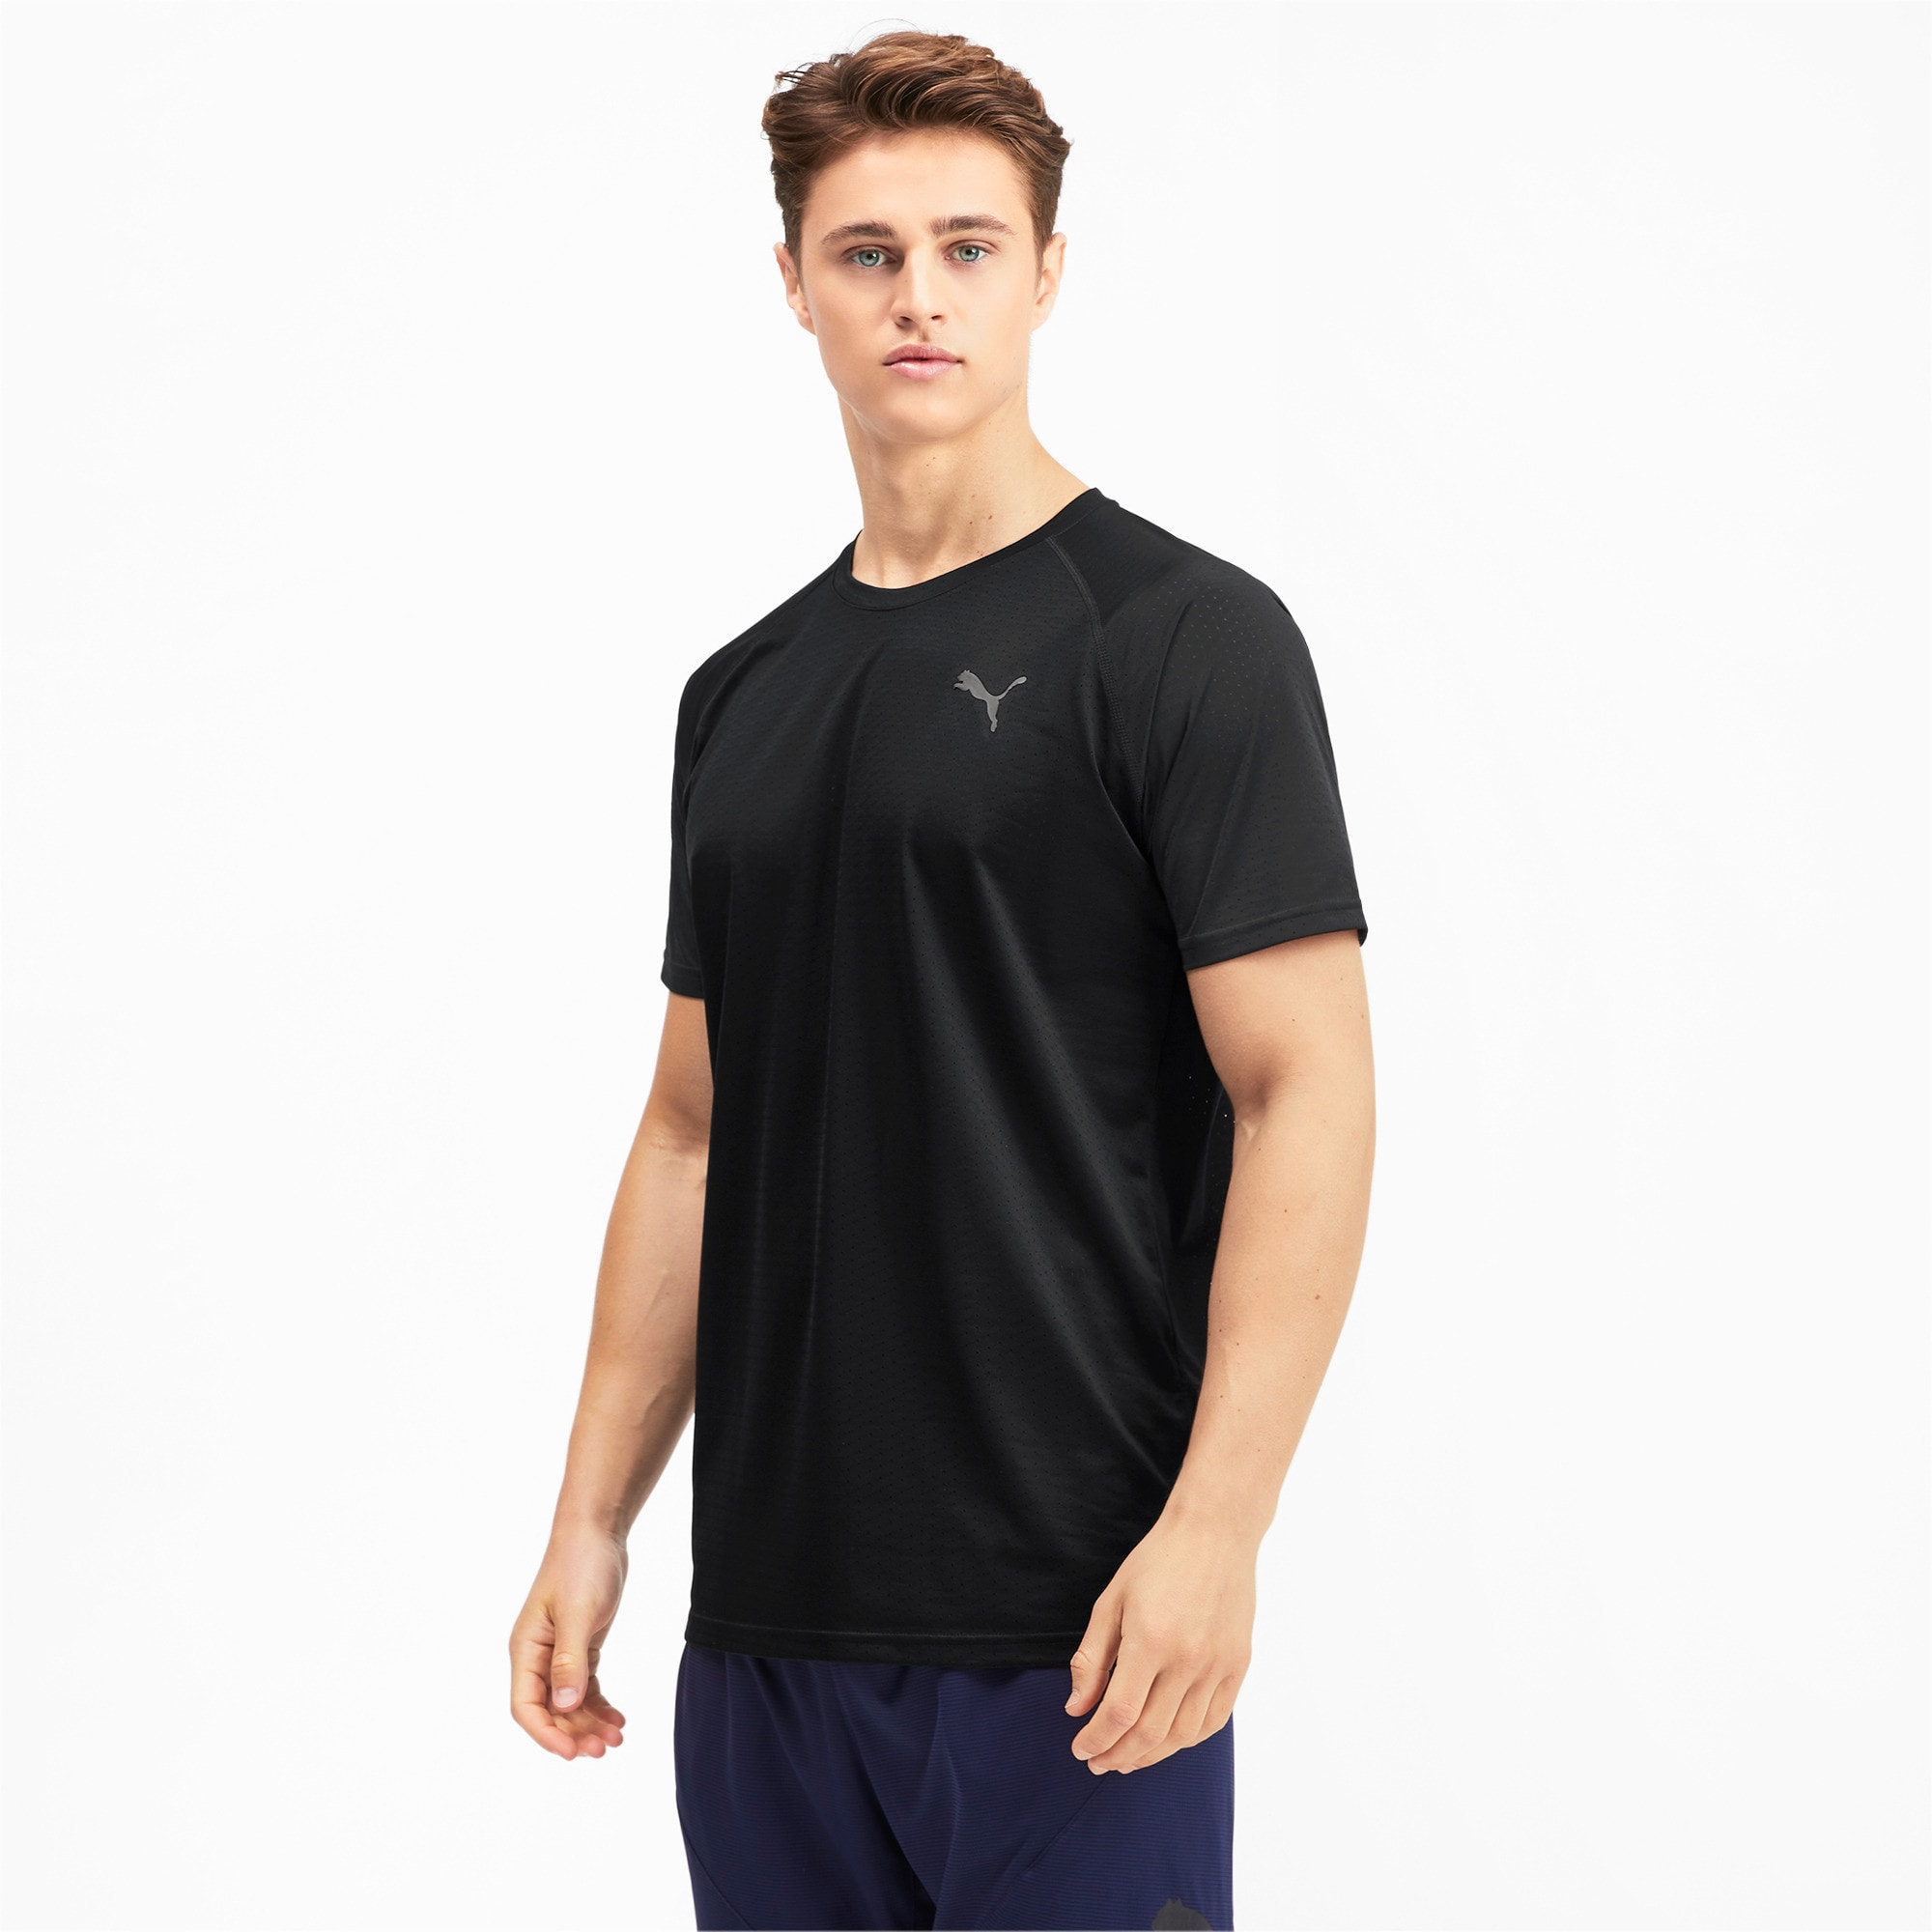 Thumbnail 1 of Short Sleeve Men's Tech Training Tee, Puma Black, medium